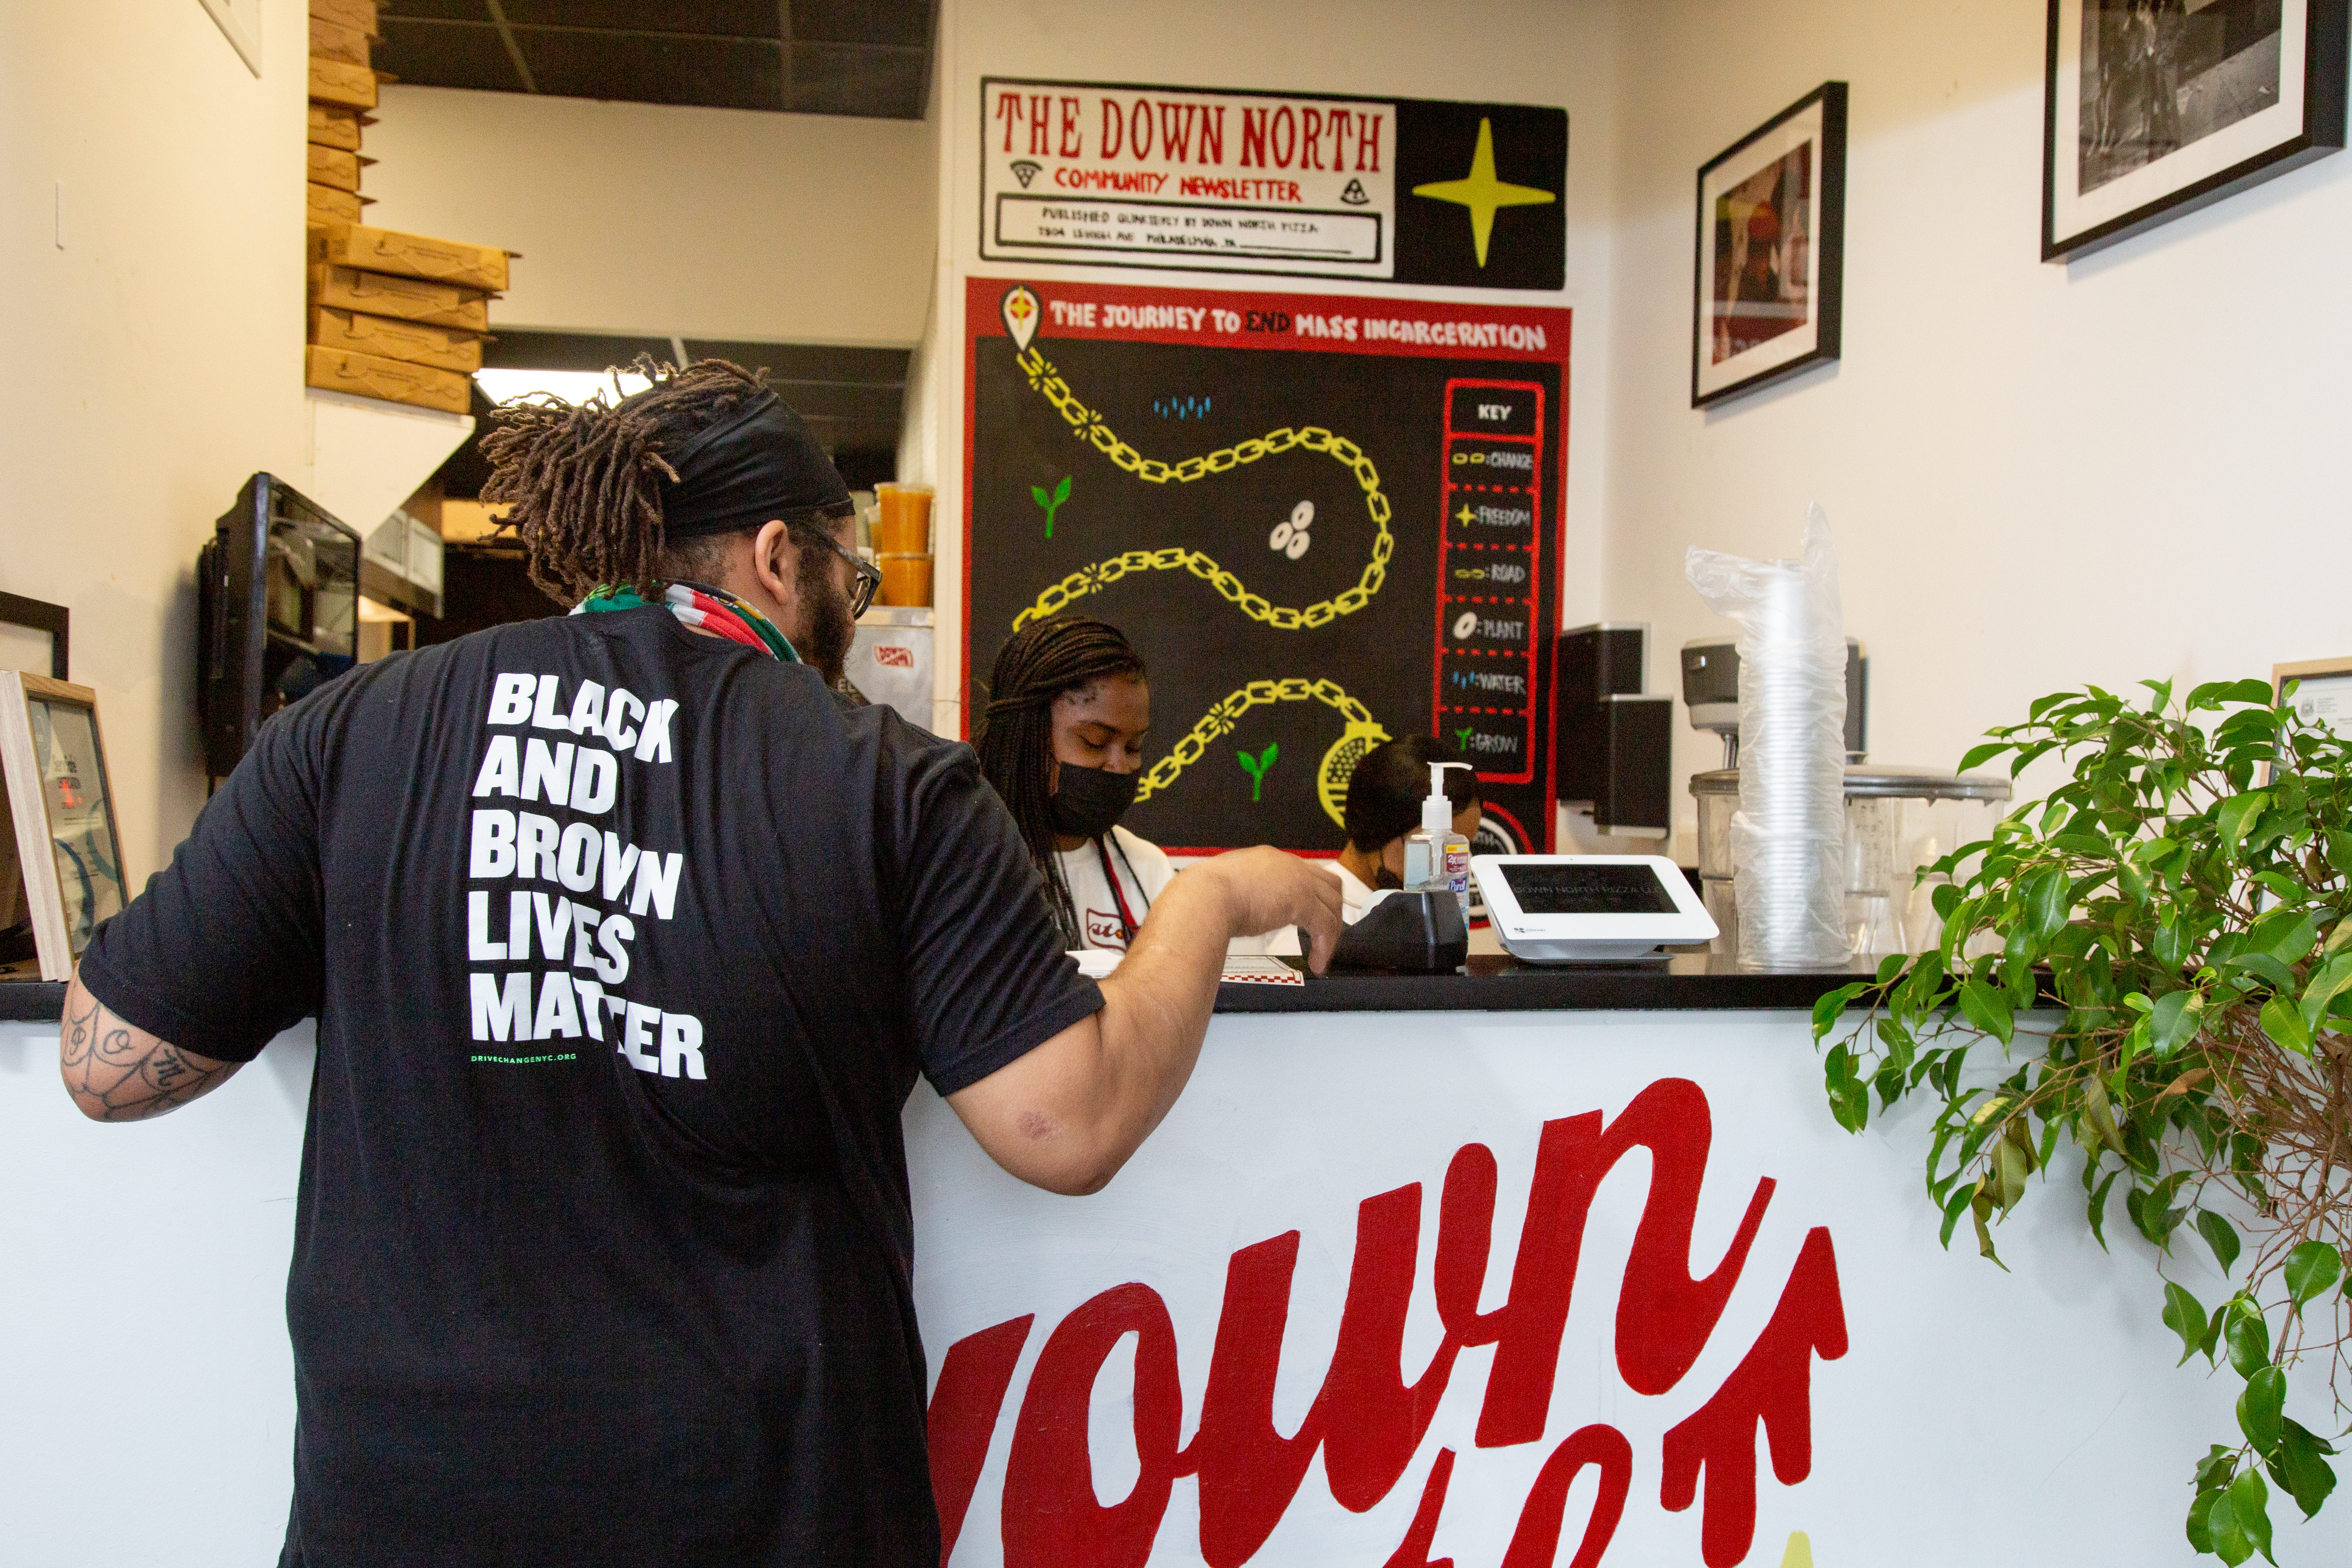 kurt evans stands at a counter at a pizza place with a shirt that says black and brown lives matter